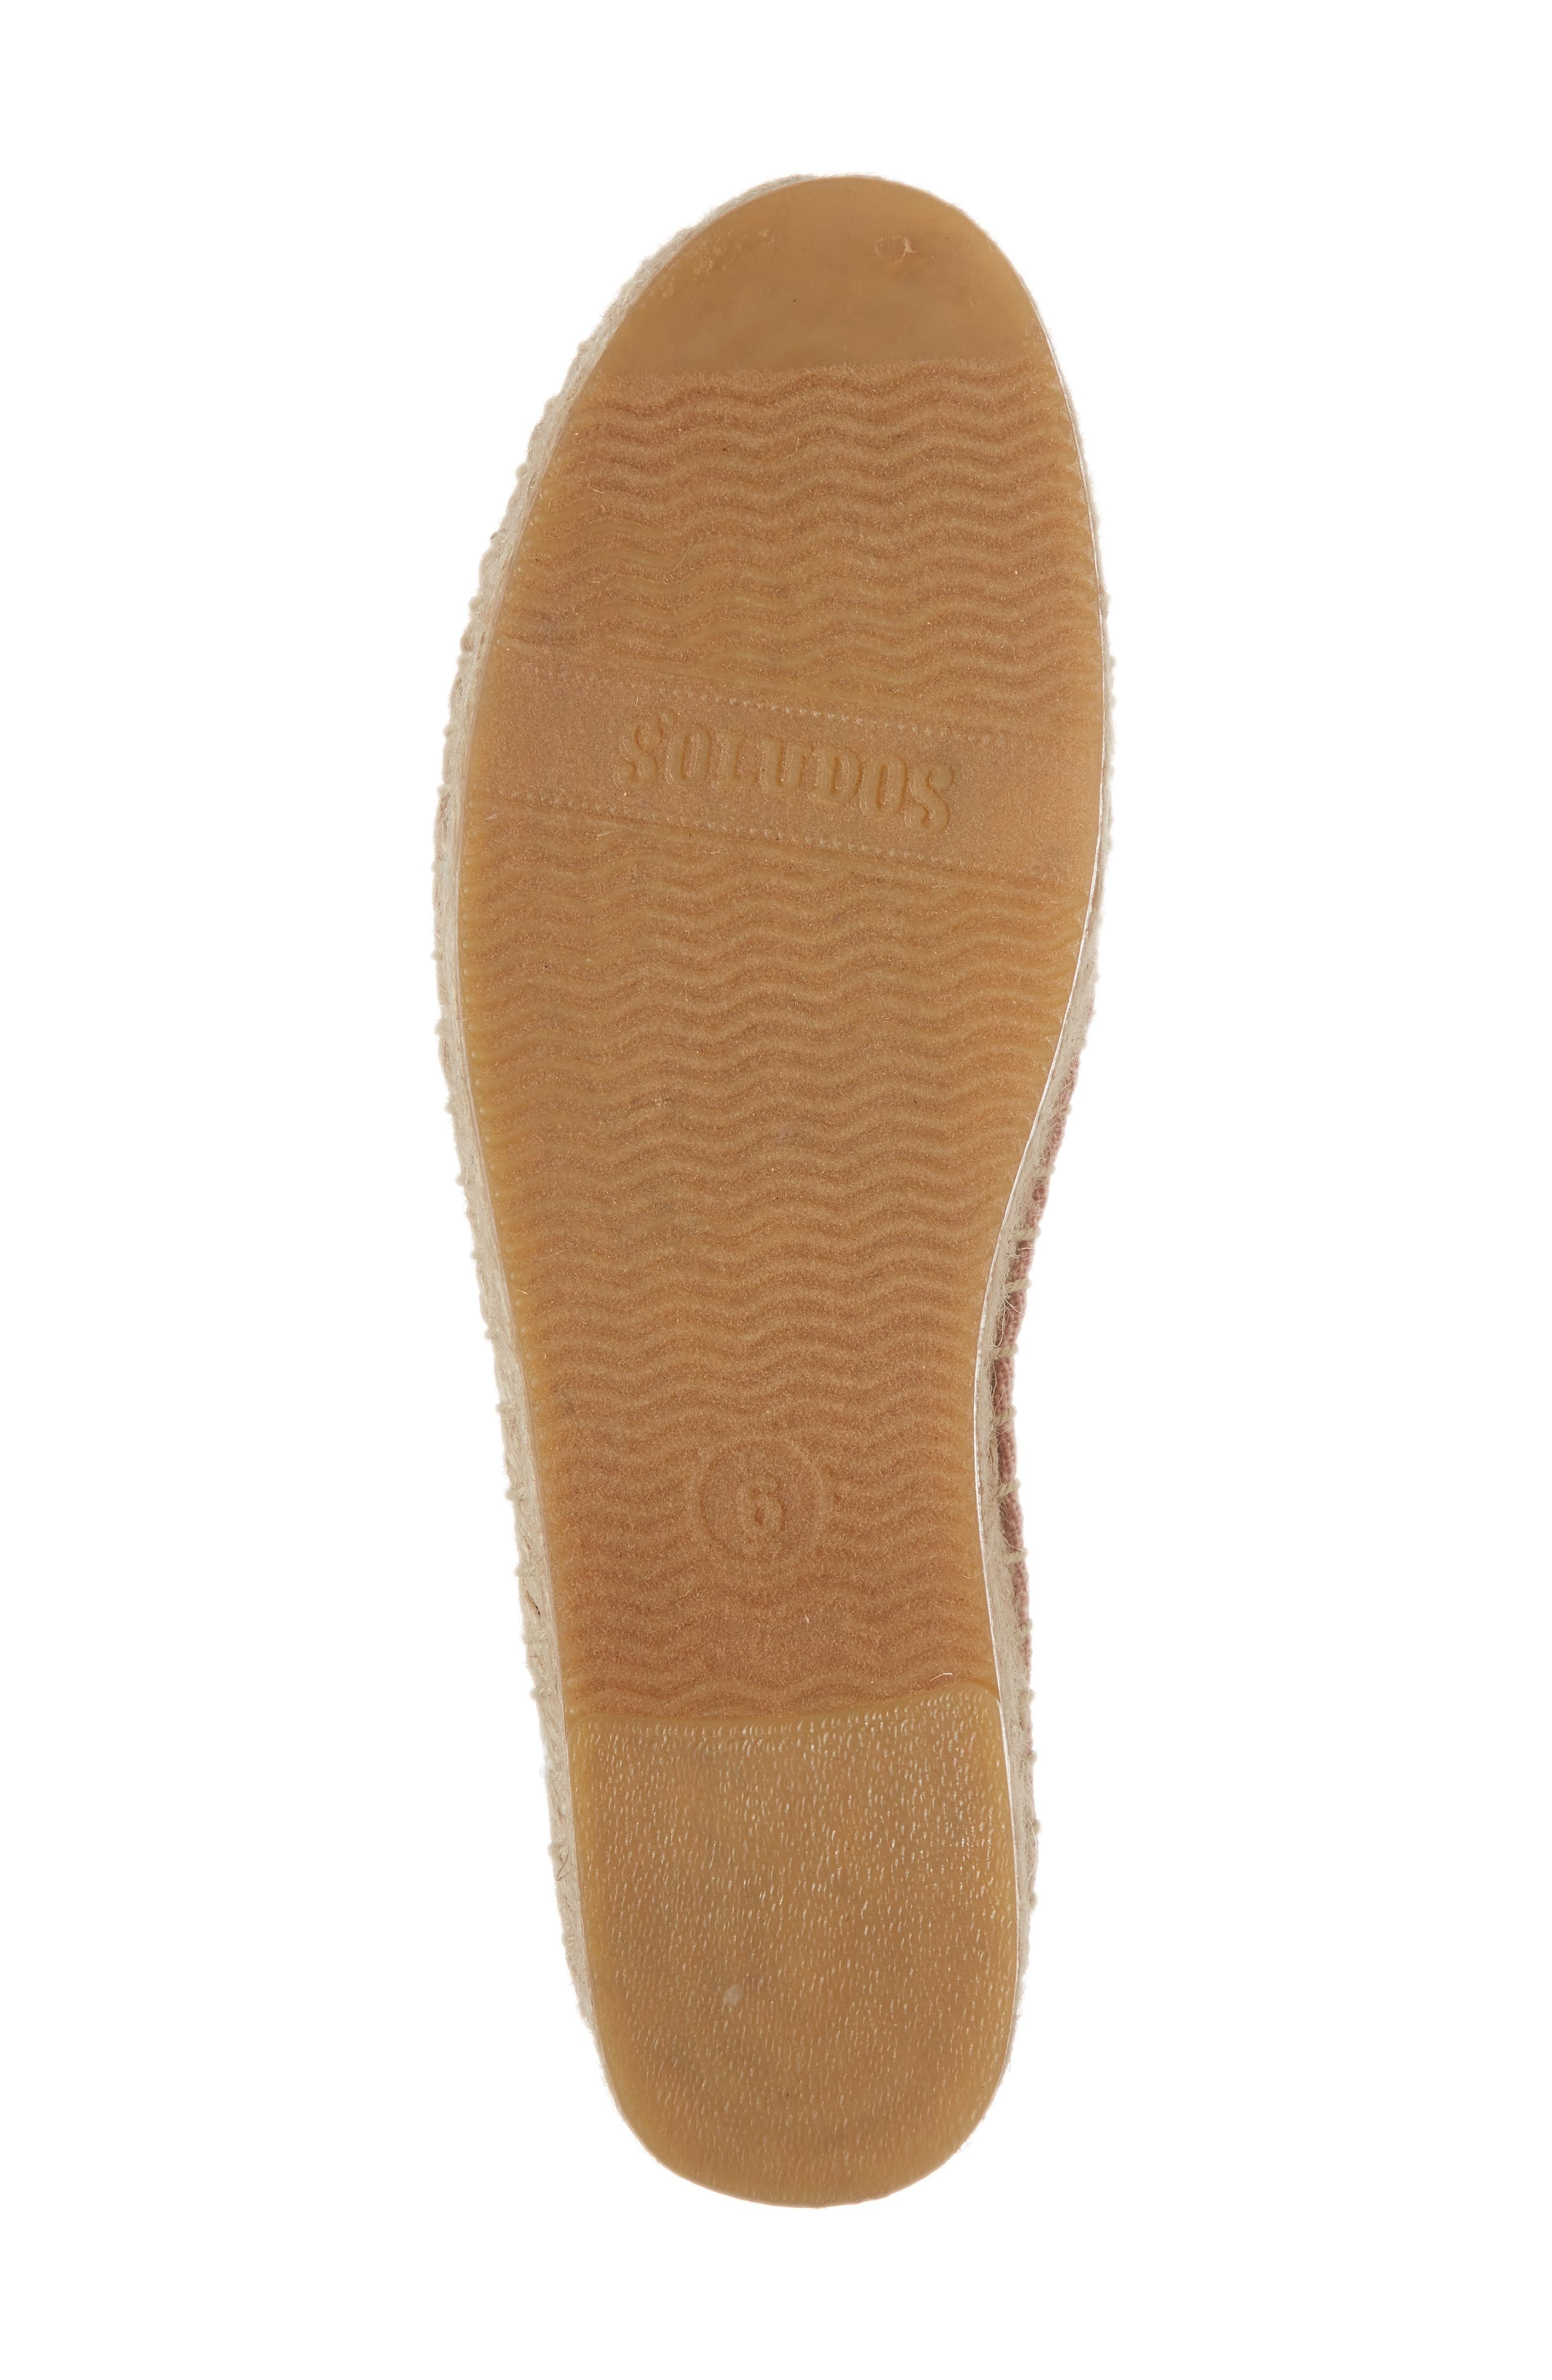 Ciao Bella Espadrille Flat,                             Alternate thumbnail 6, color,                             Dusty Rose Fabric